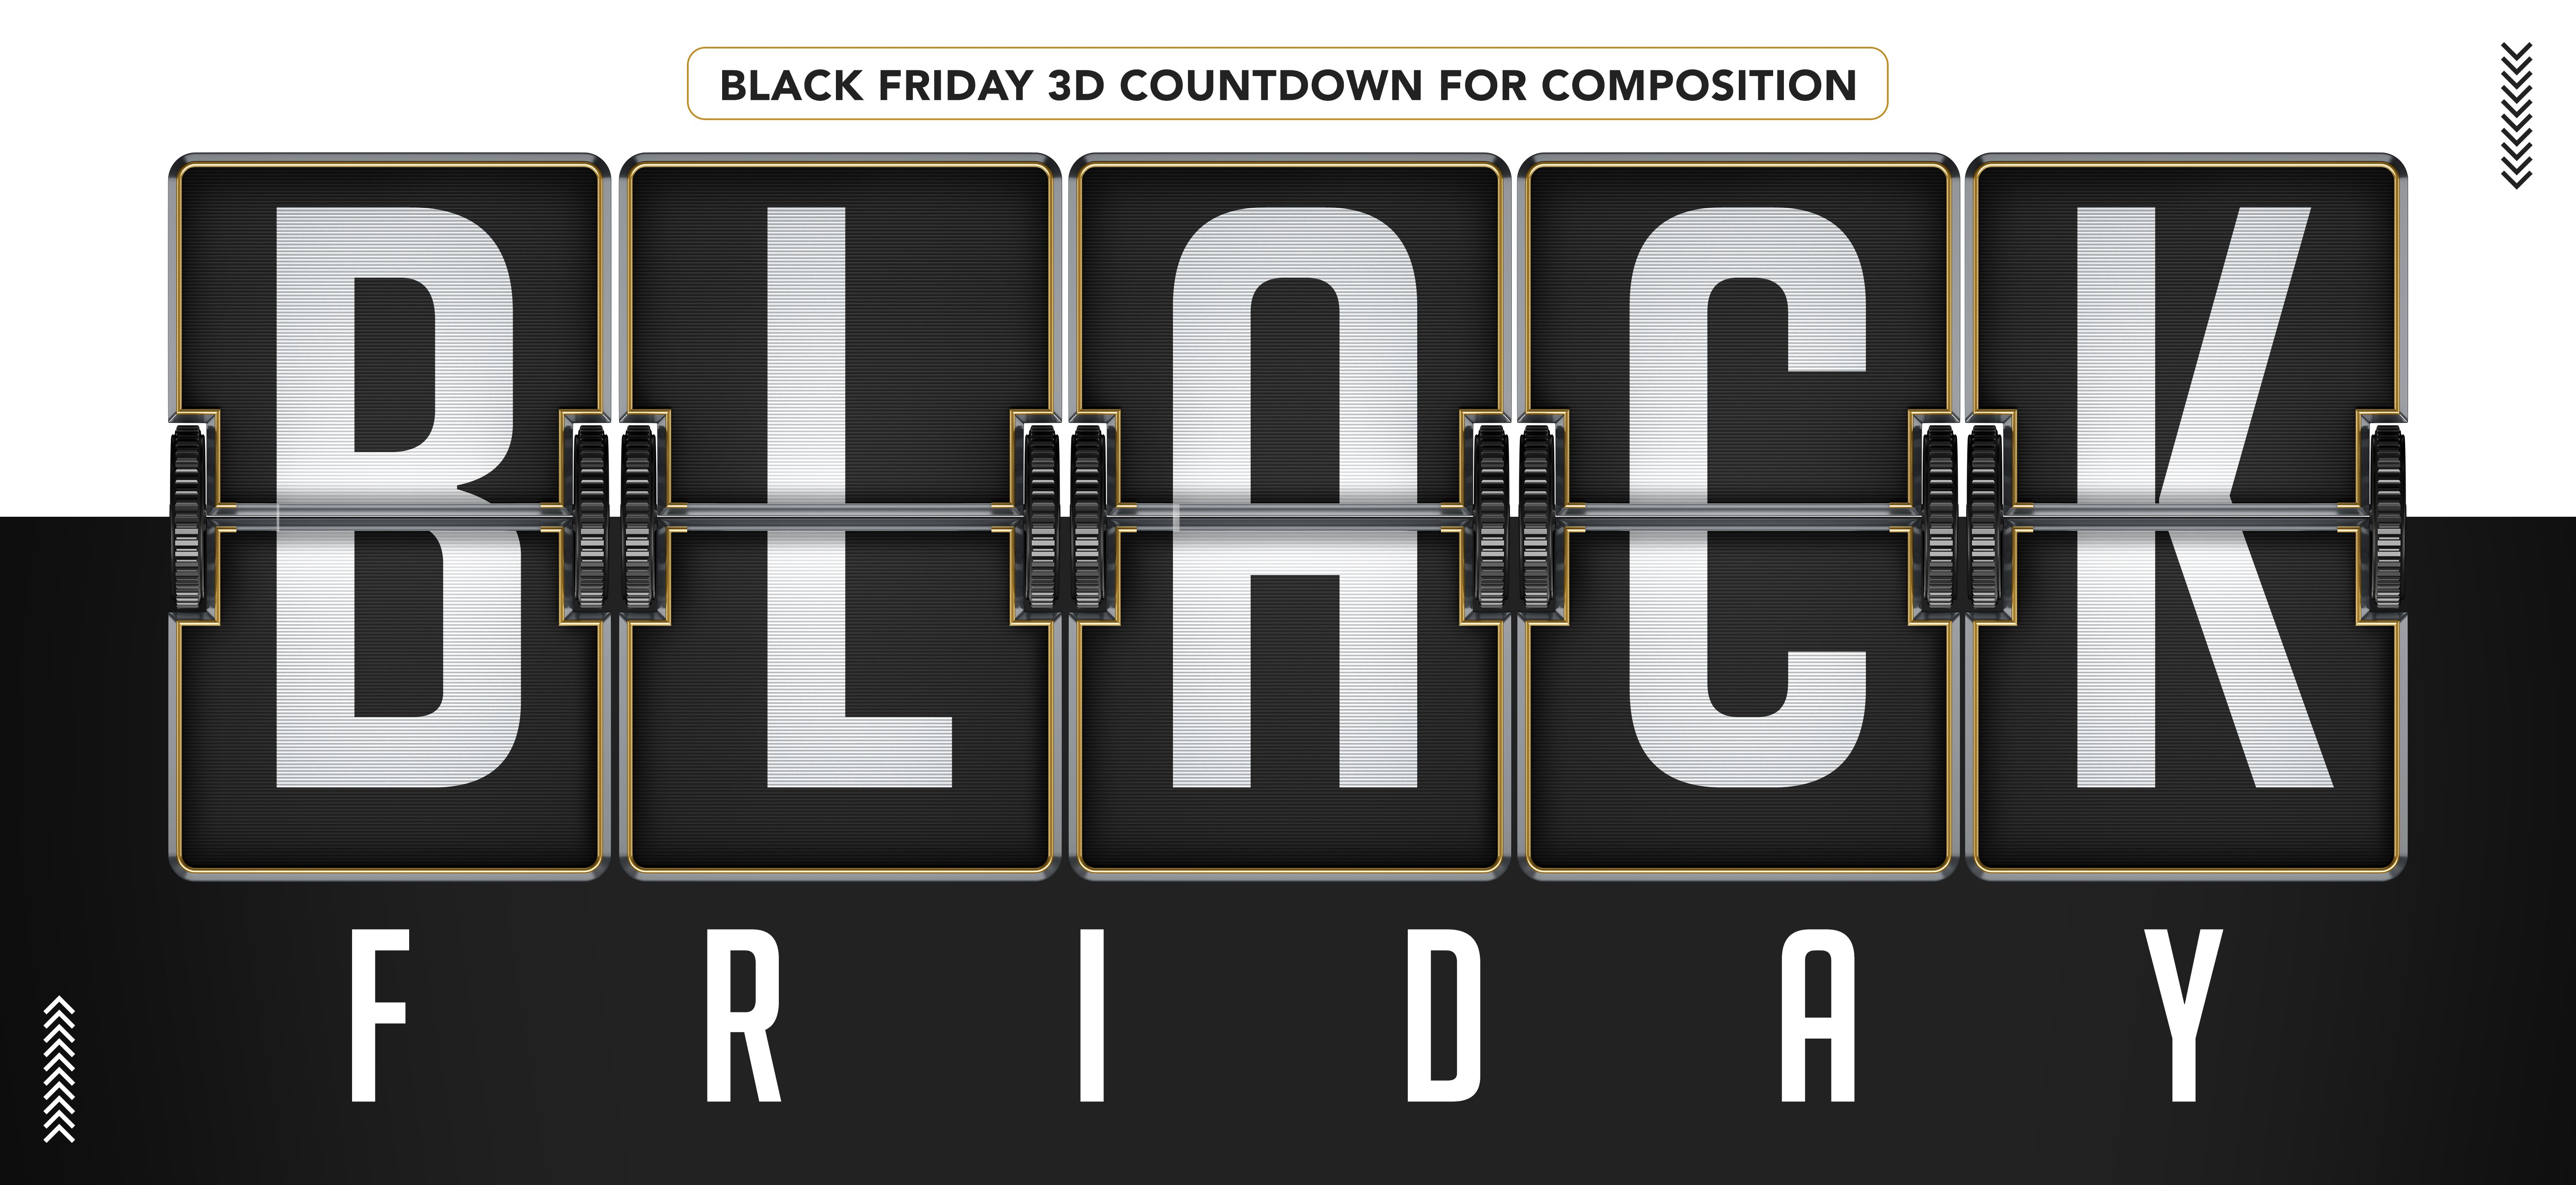 Black Friday 3d Countdown For Composition Mockup In 2020 Black Black Friday Composition